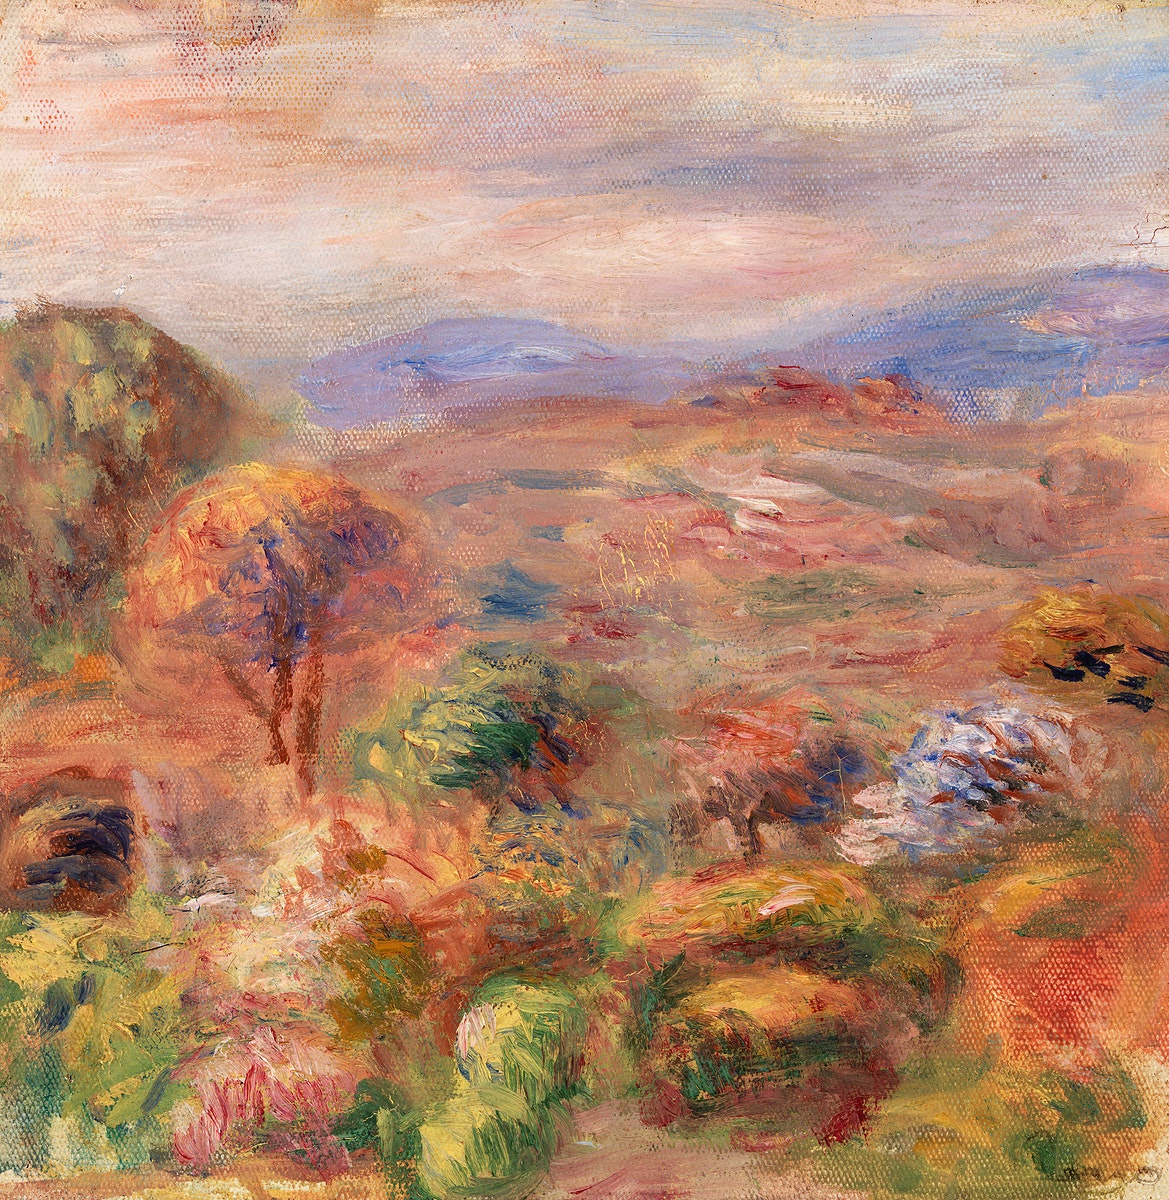 Landscape (Paysage) (1911) by Pierre-Auguste Renoir. Original from Barnes Foundation. Digitally enhanced by rawpixel.